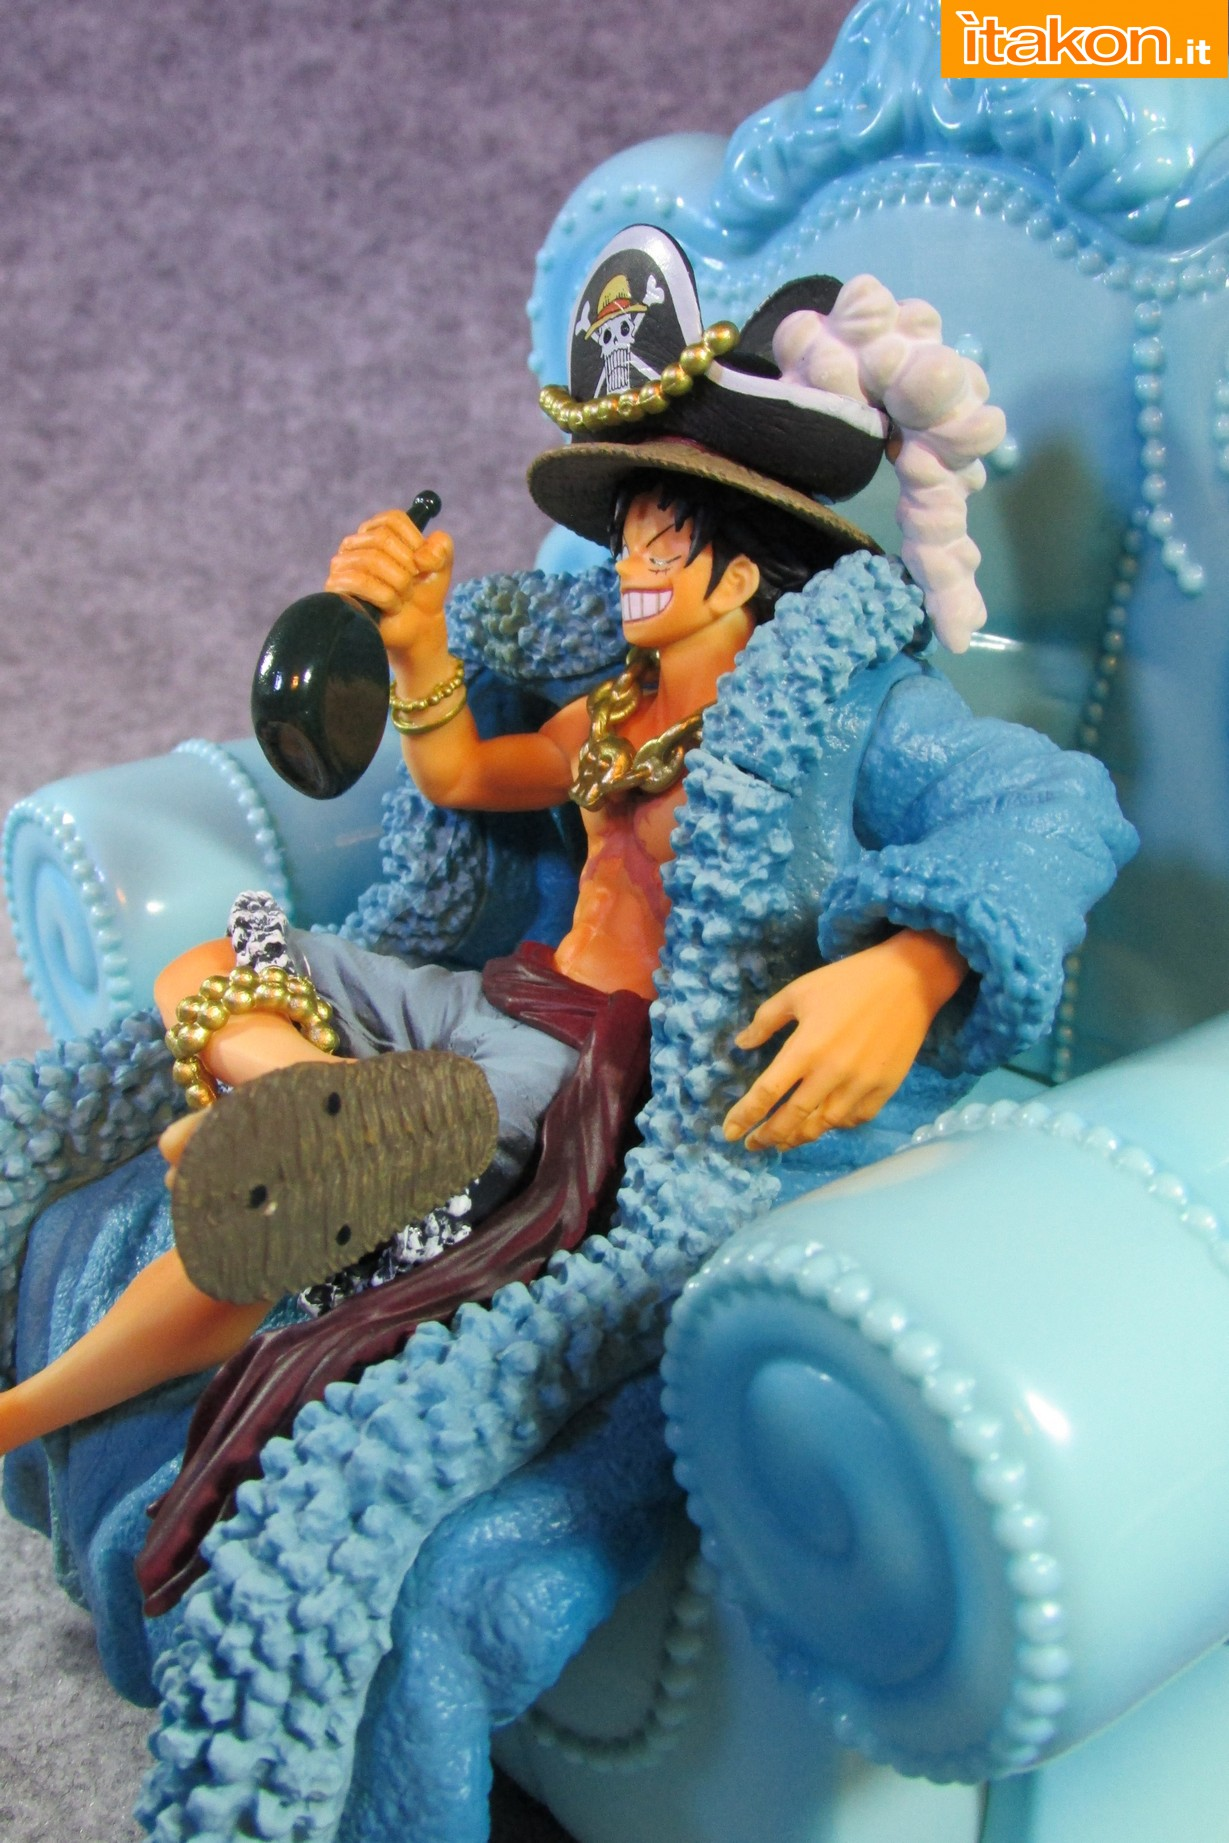 Link a Recensione Review Monkey D. Luffy One Piece 20th Anniversary ver. Figuarts ZERO di Bandai 22